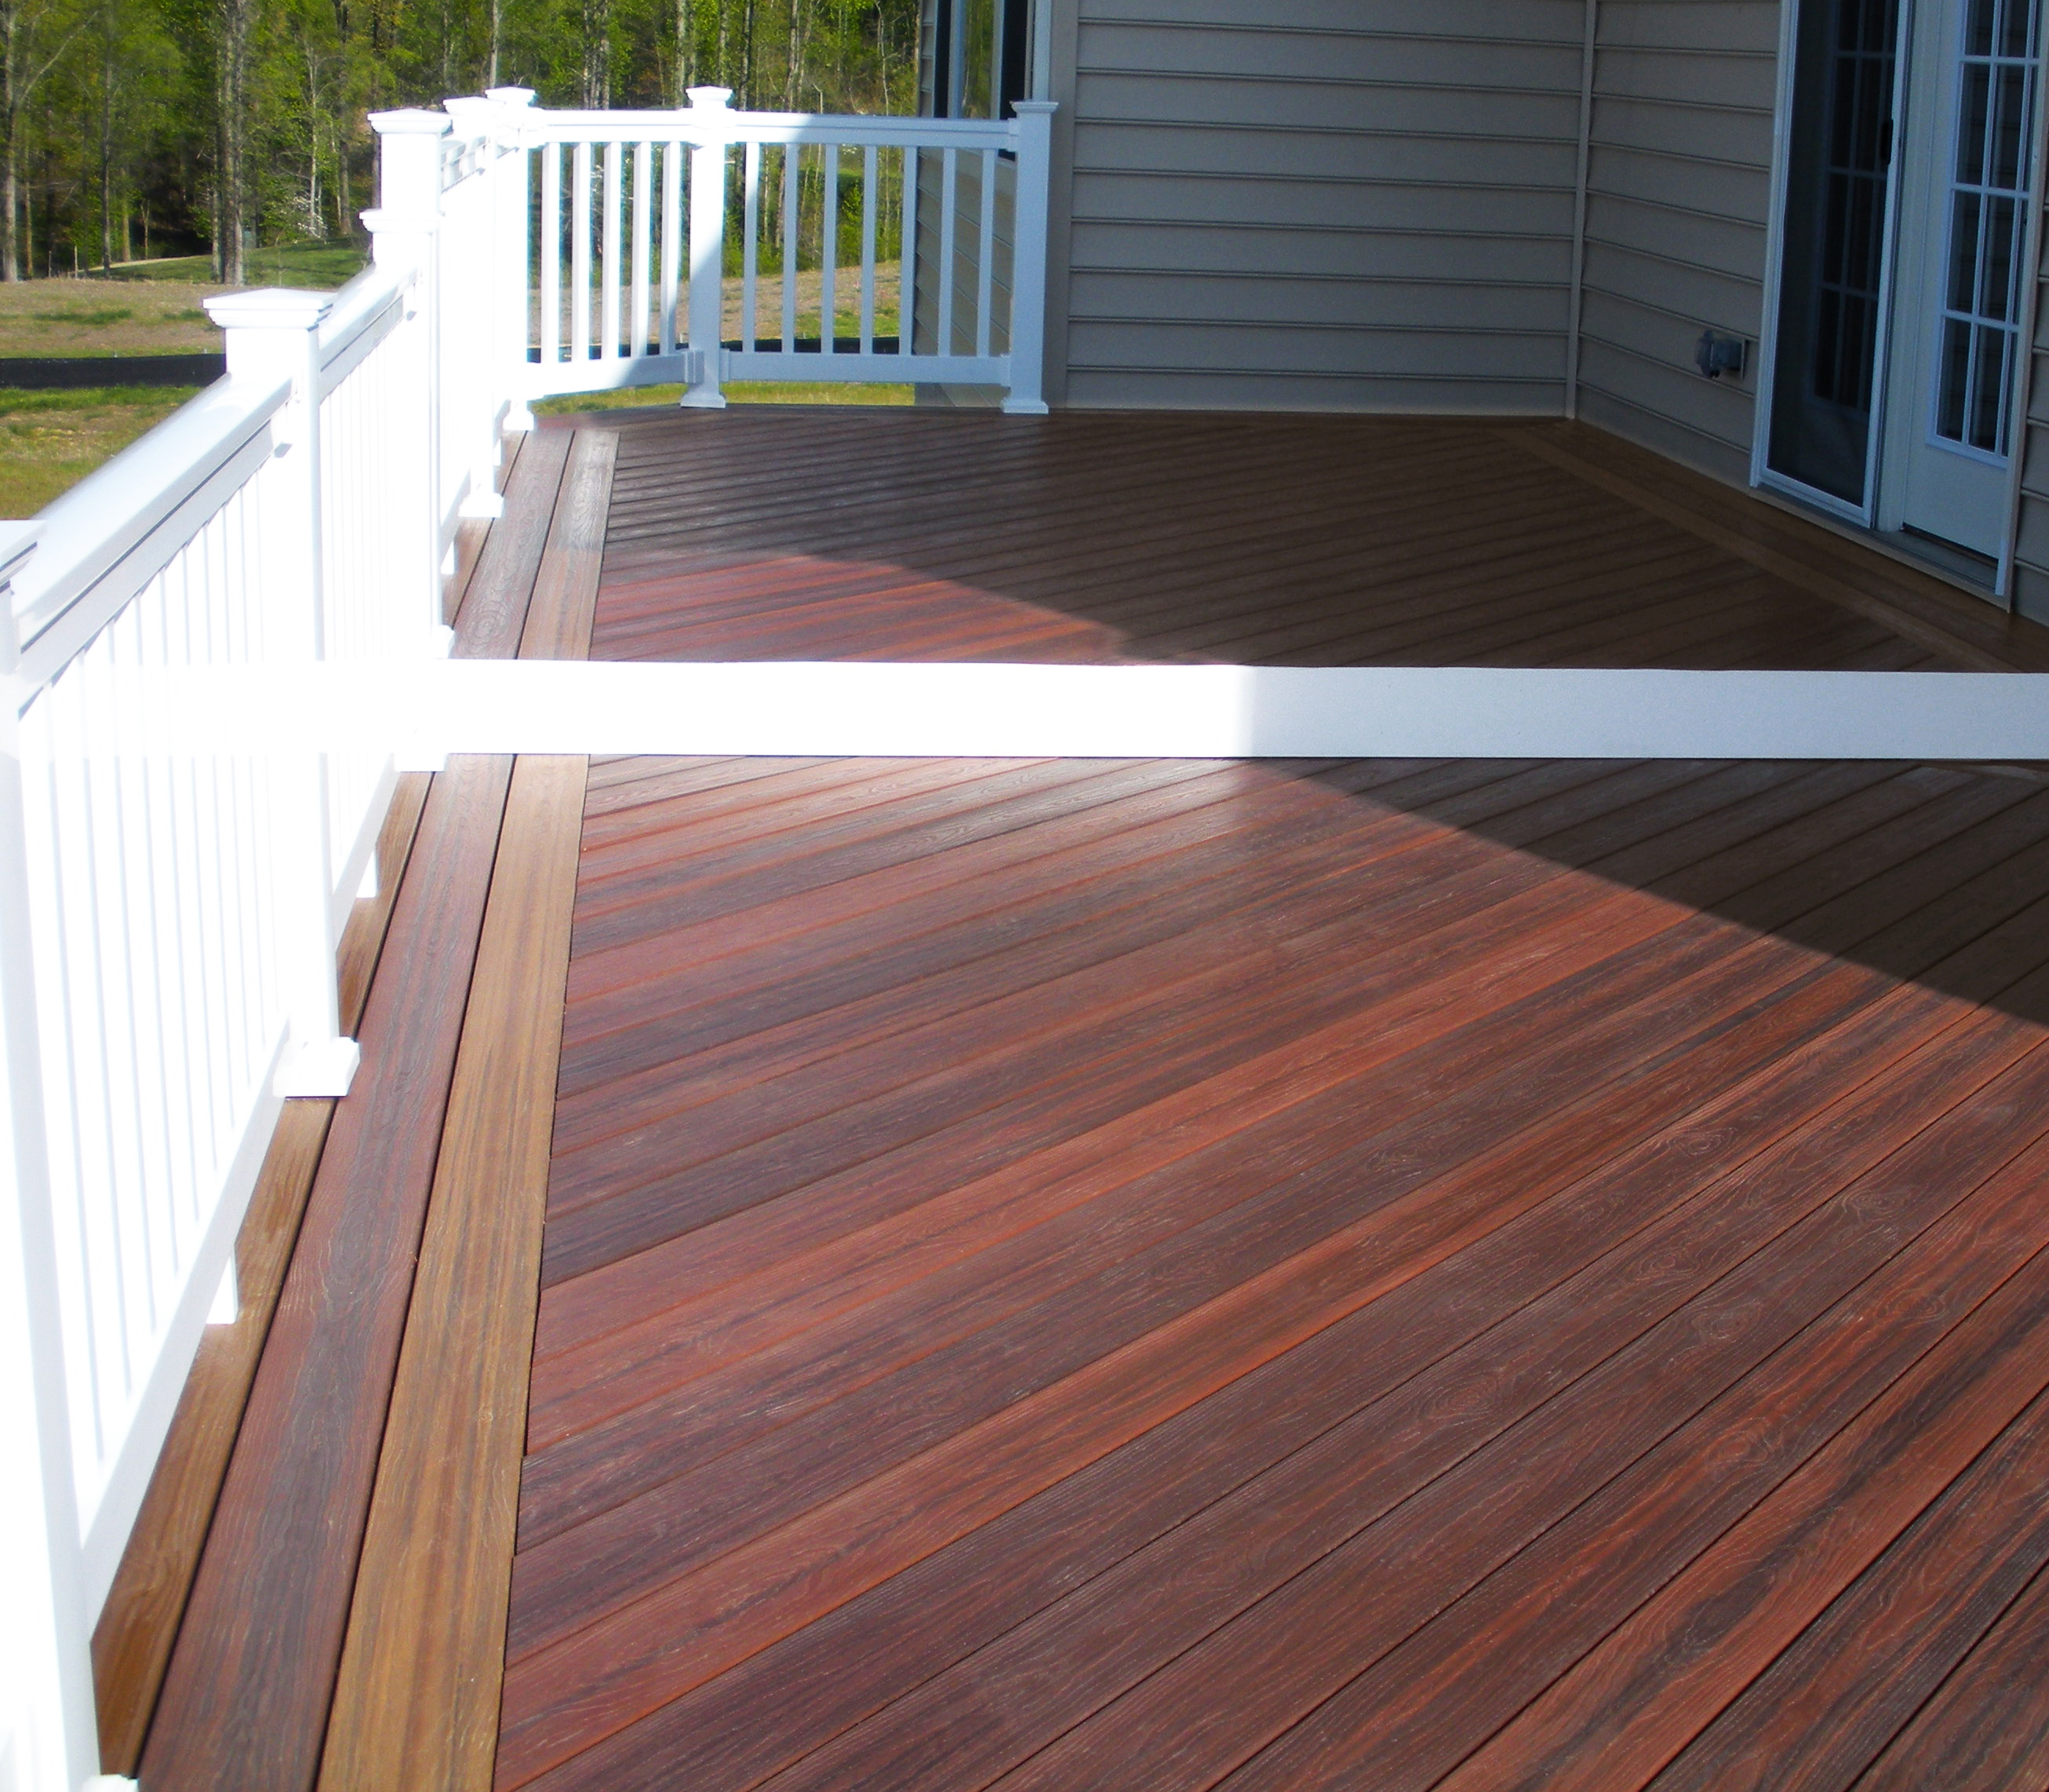 Evergrain Envision Shaded Auburn & Spiced Teak